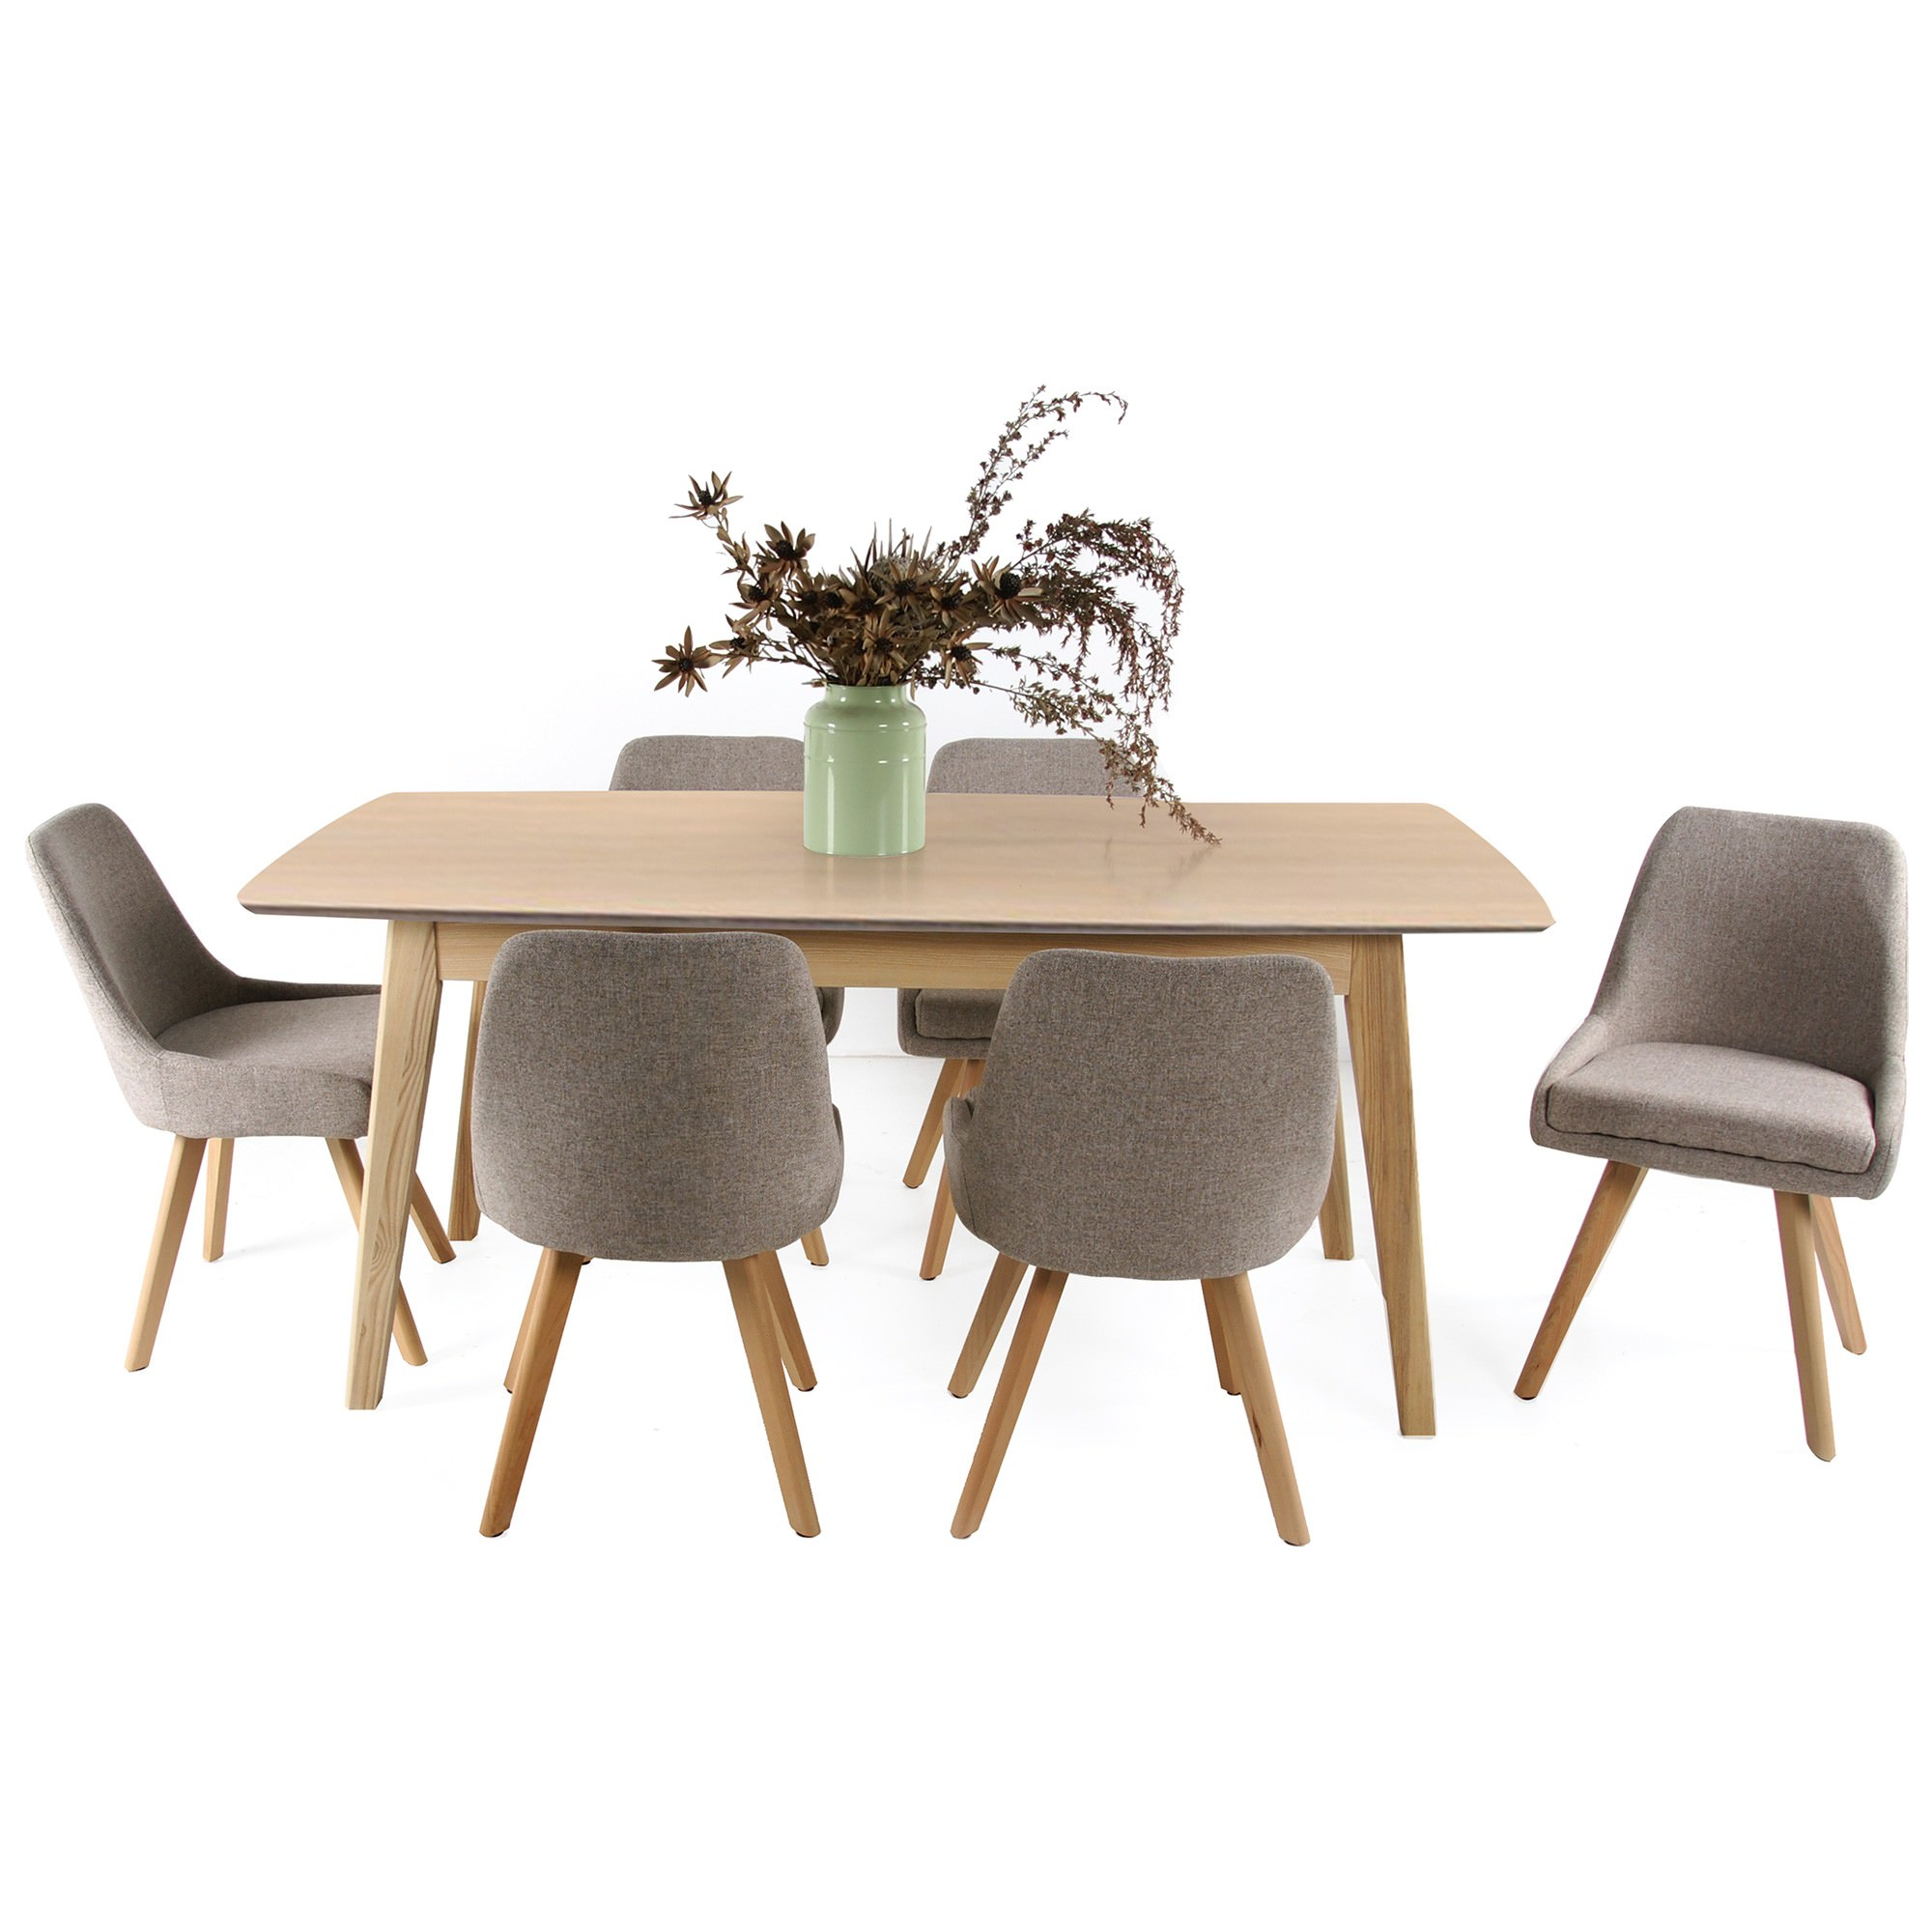 Alexandria 7 Piece Extendable Dining Table Set, 180-220cm, Natural Top, with Alexandria Chair